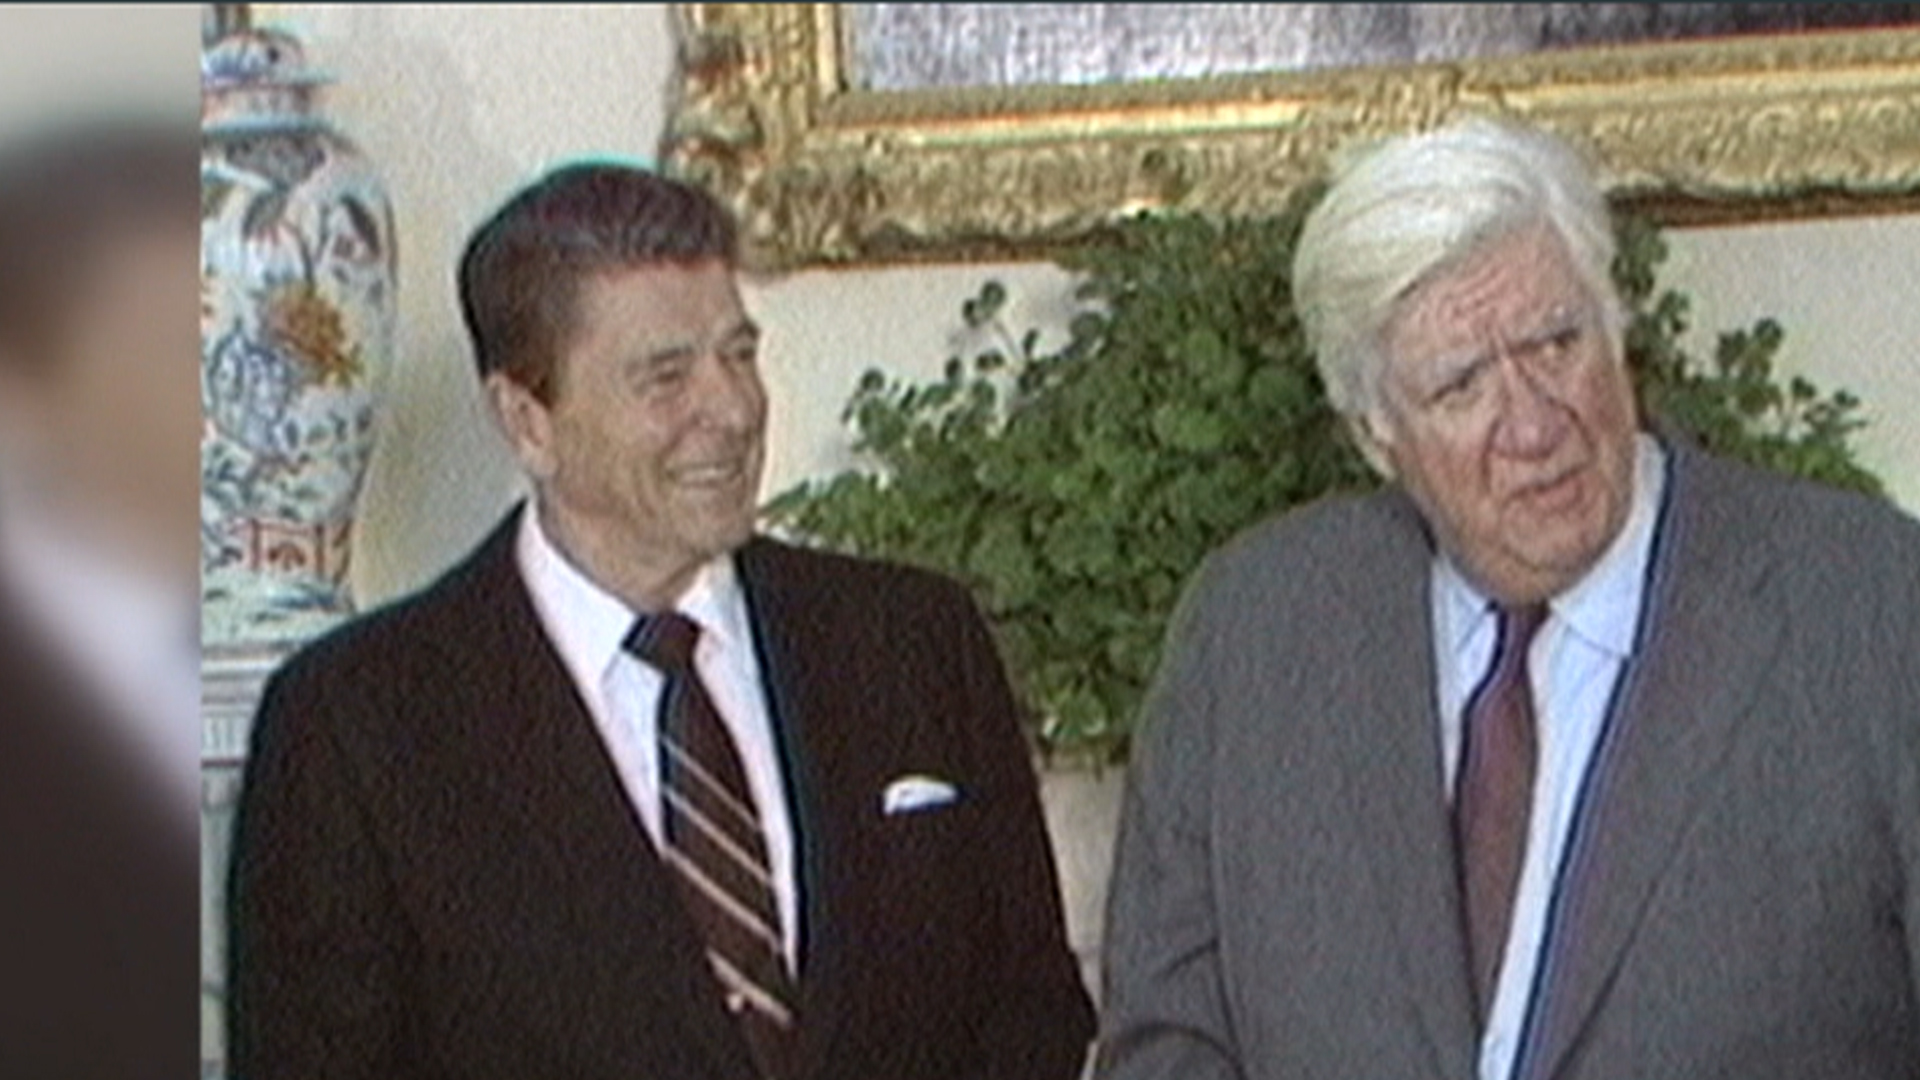 GOP Reagan myths unsettled by facts